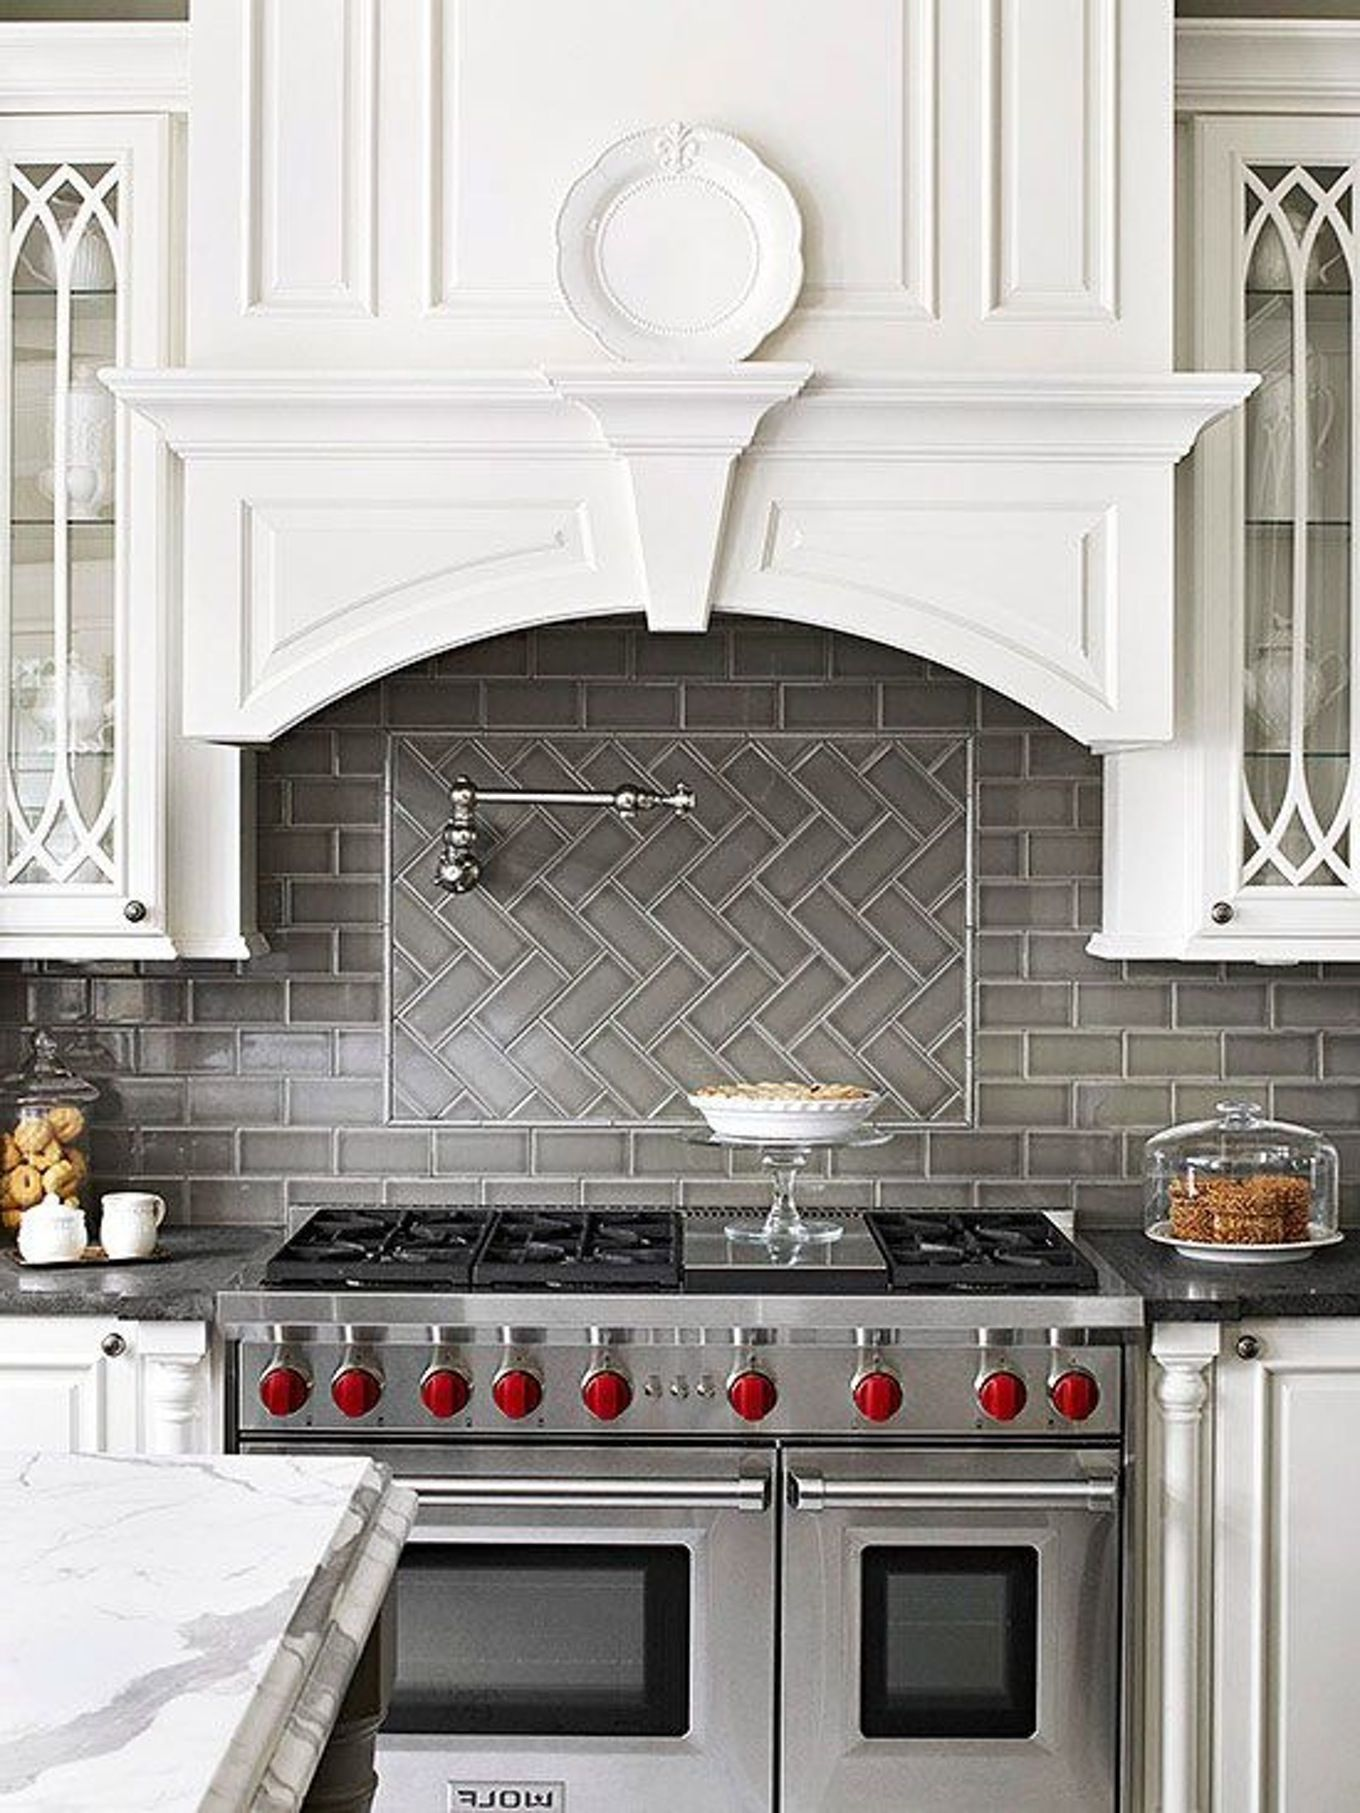 Interesting Kitchen Decorating Ideas With Elegant Lowes Tile Backsplash:  Lowes Tile Backsplash | Kitchen Tiles Lowes | Lowes Backsplash For Kitchen